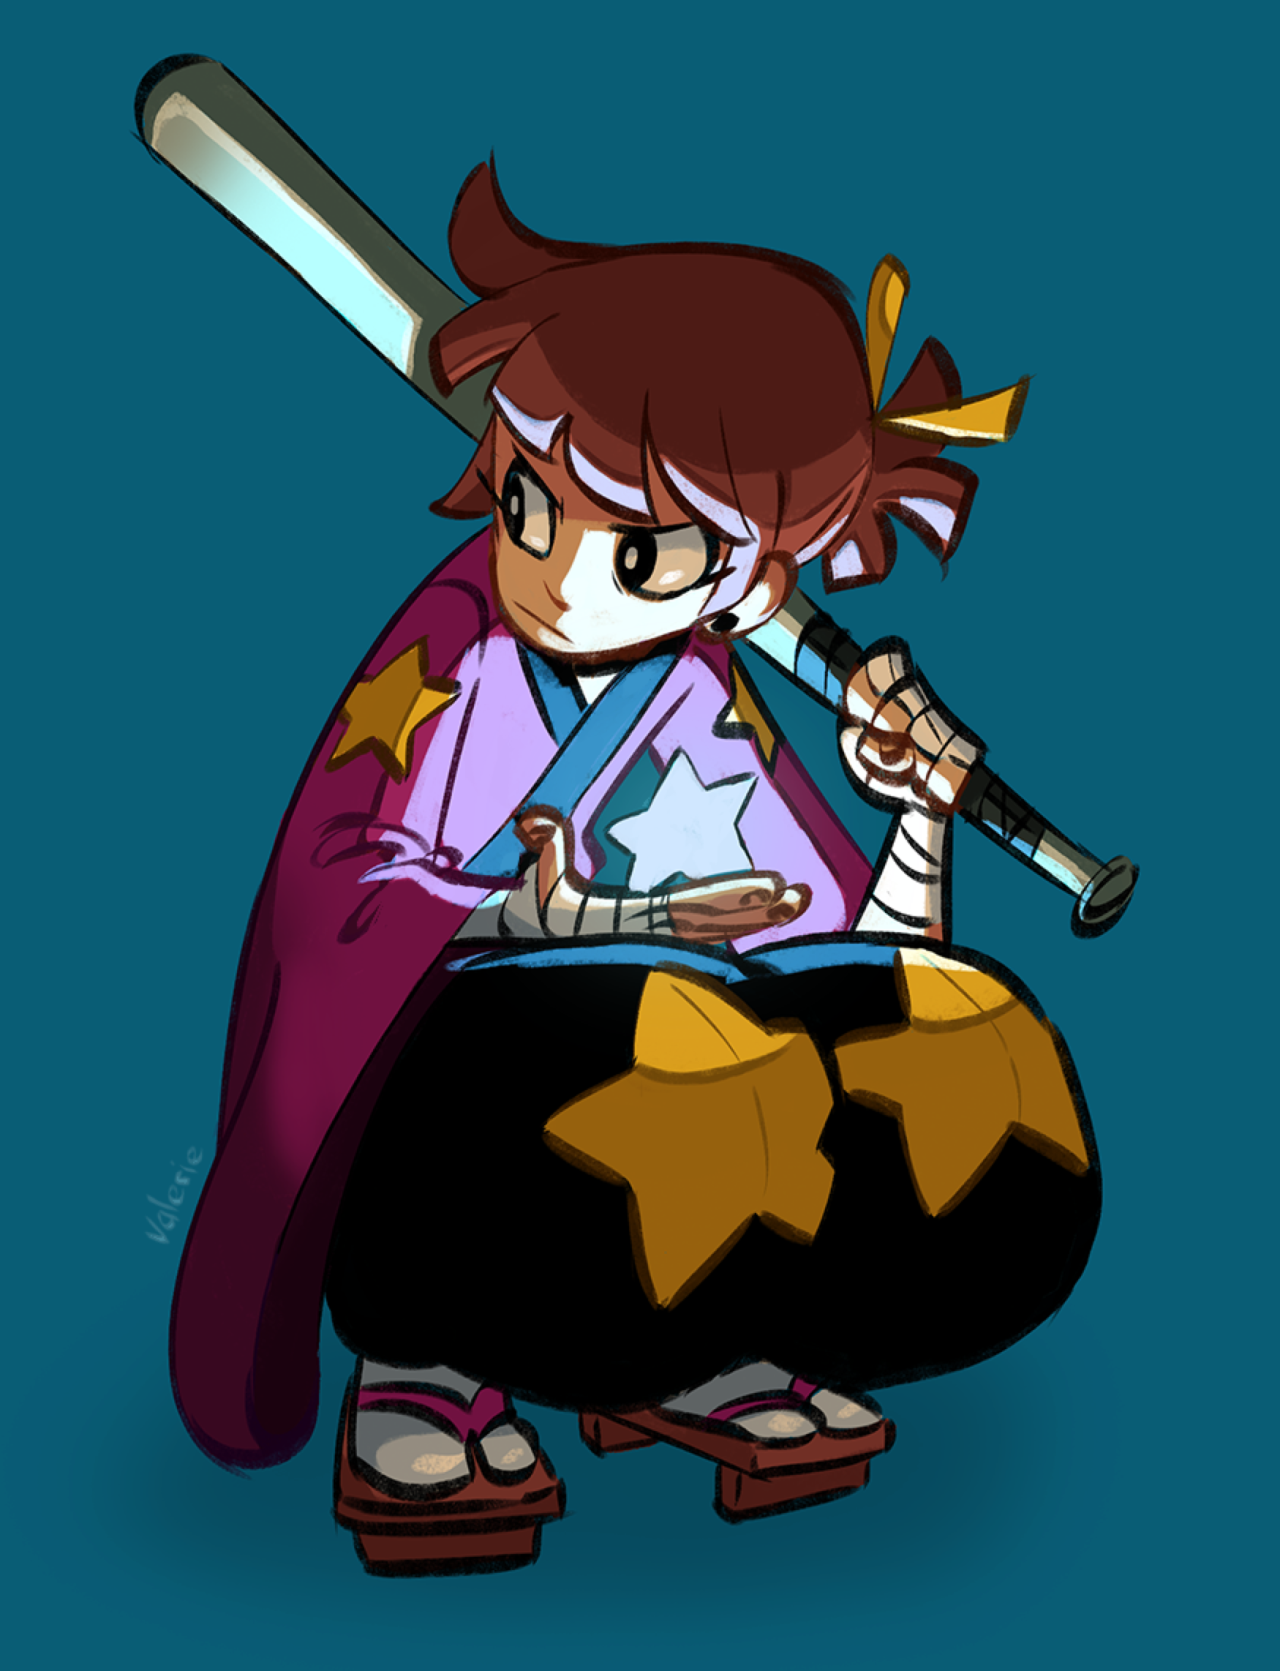 Did That Magical Girl Generator Thing Magical Girl Valerie Theme Samurai Motif Star Weapon Character Design Concept Art Characters Female Character Design